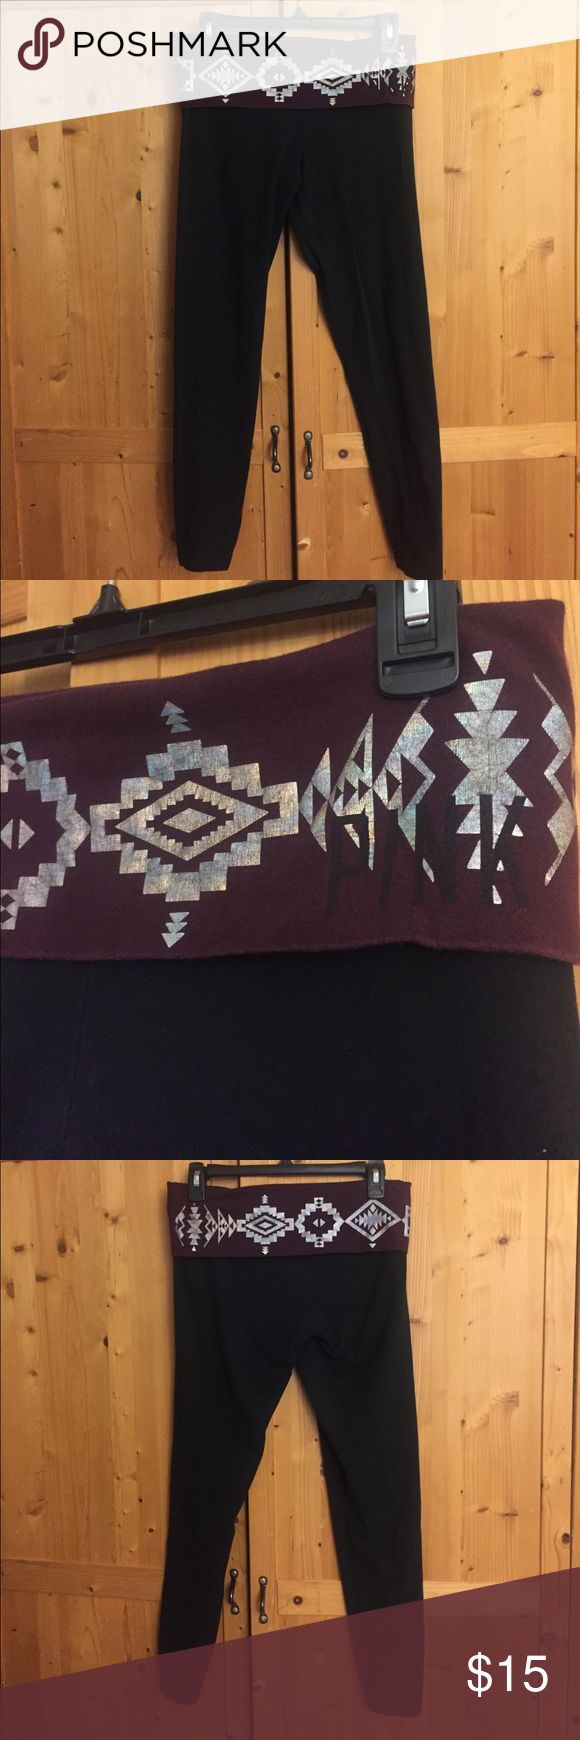 Victoria's Secret Yoga Leggings Black leggings with a maroon fold down band and holographic Aztec print PINK Victoria's Secret Pants Leggings